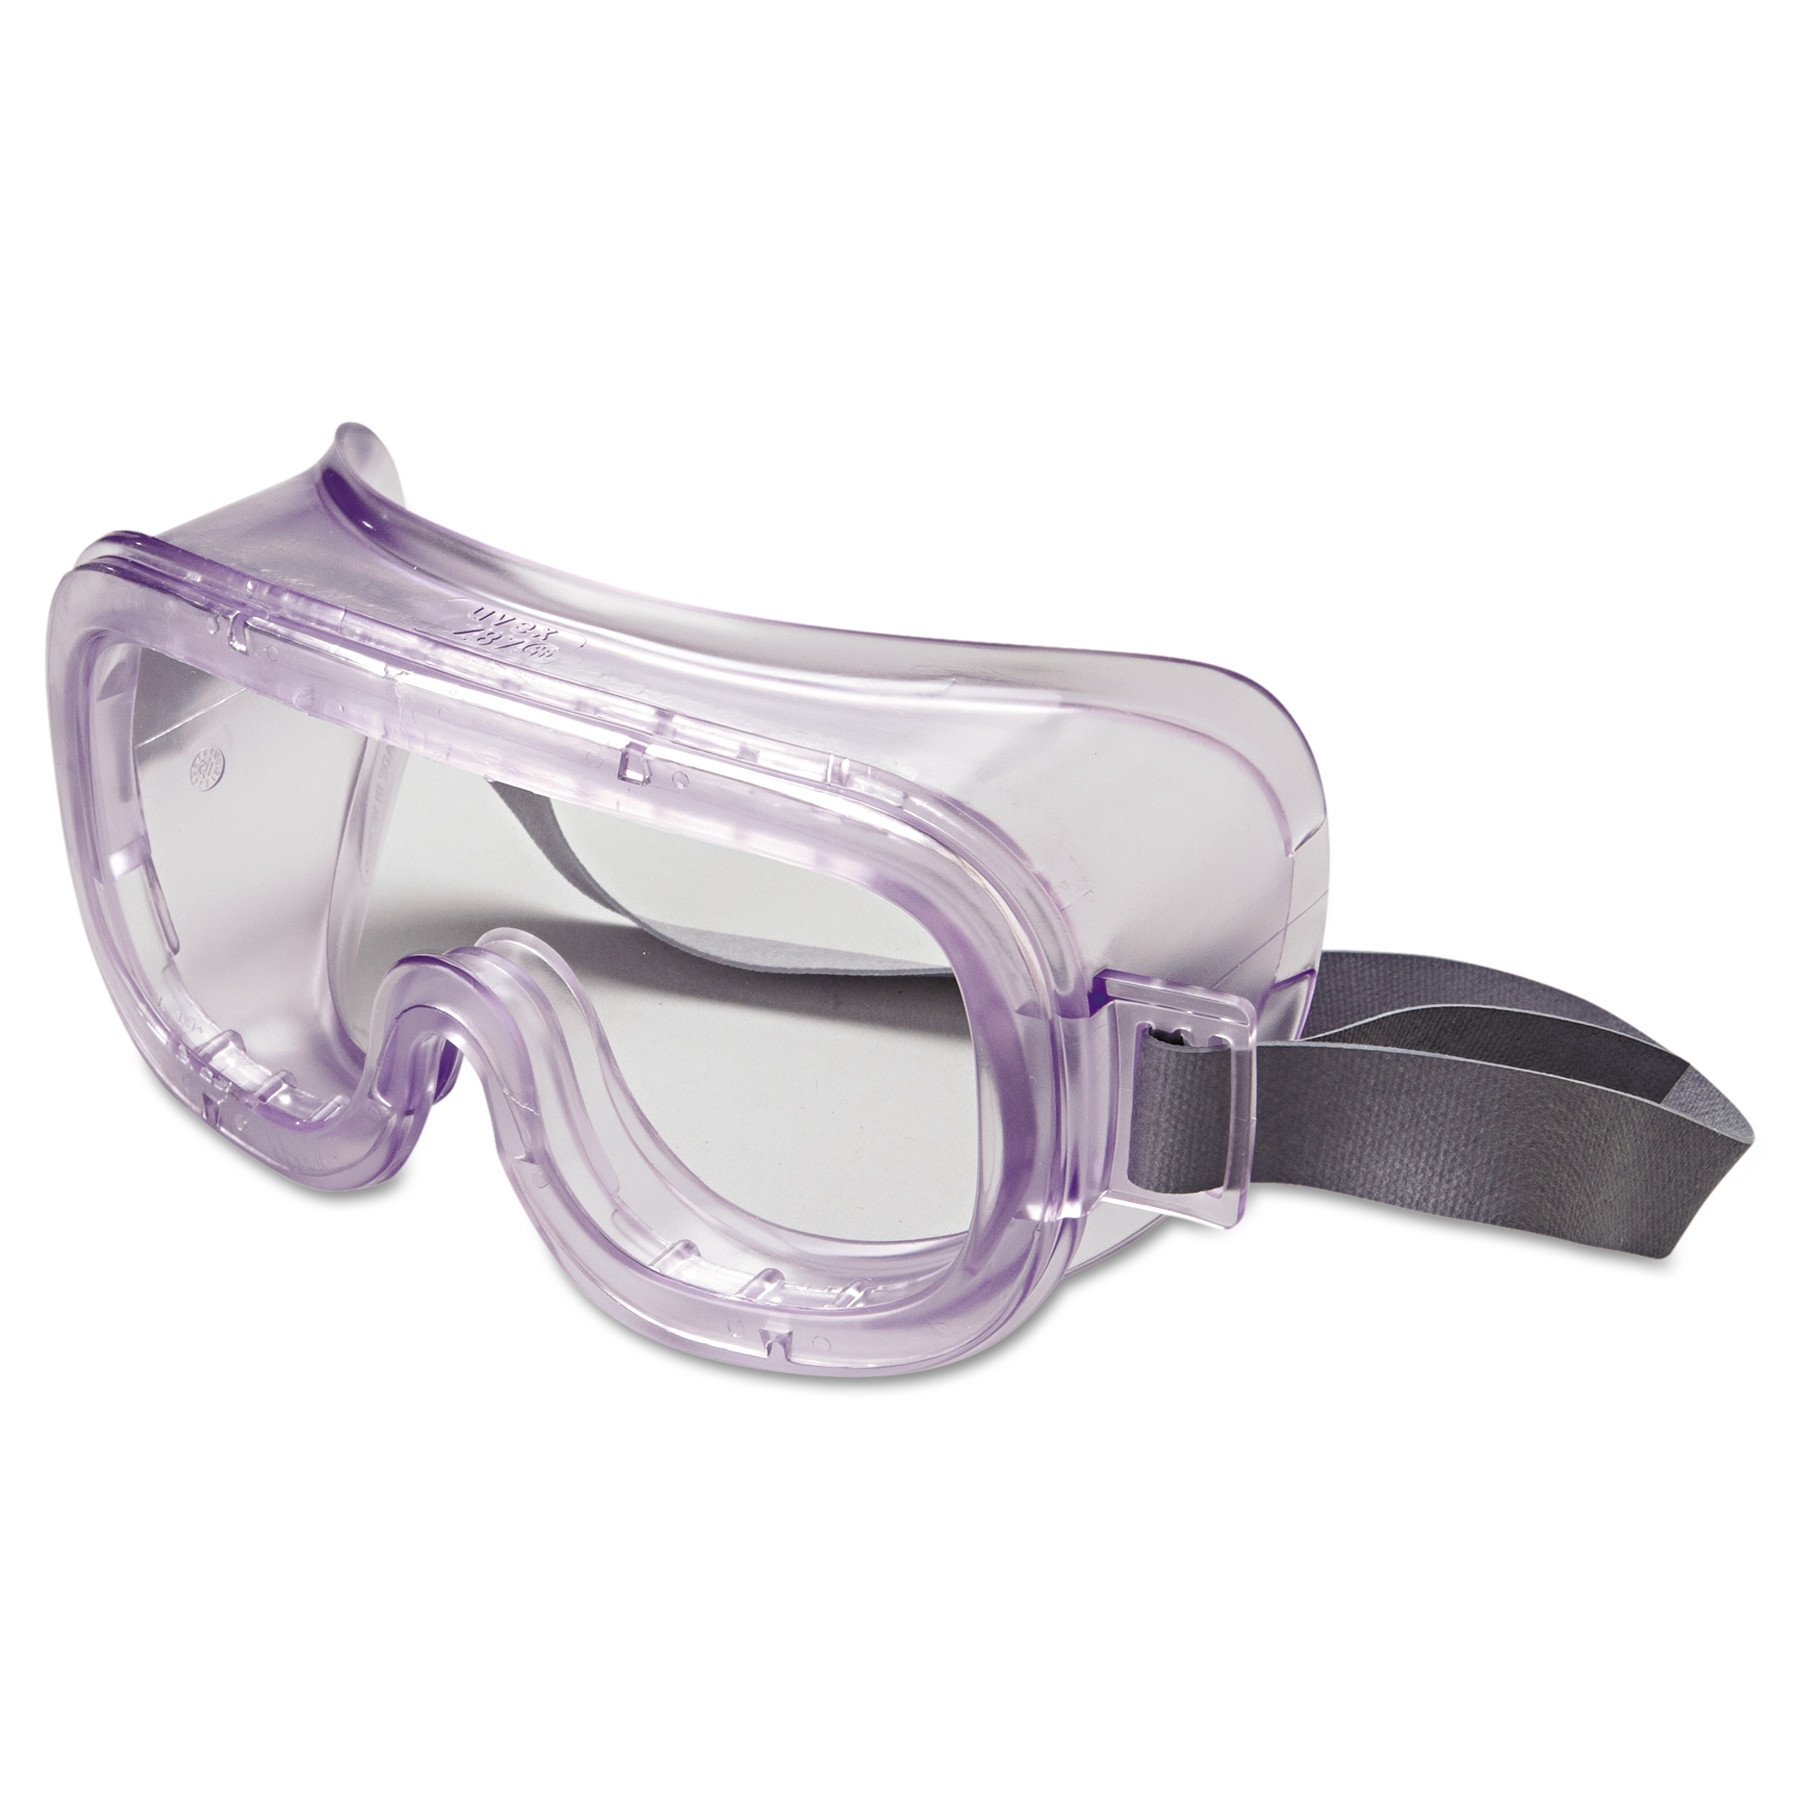 Honeywell Uvex Classic Safety Goggles, Antifog/Uvextreme Coating, Clear Frame/Clear Lens